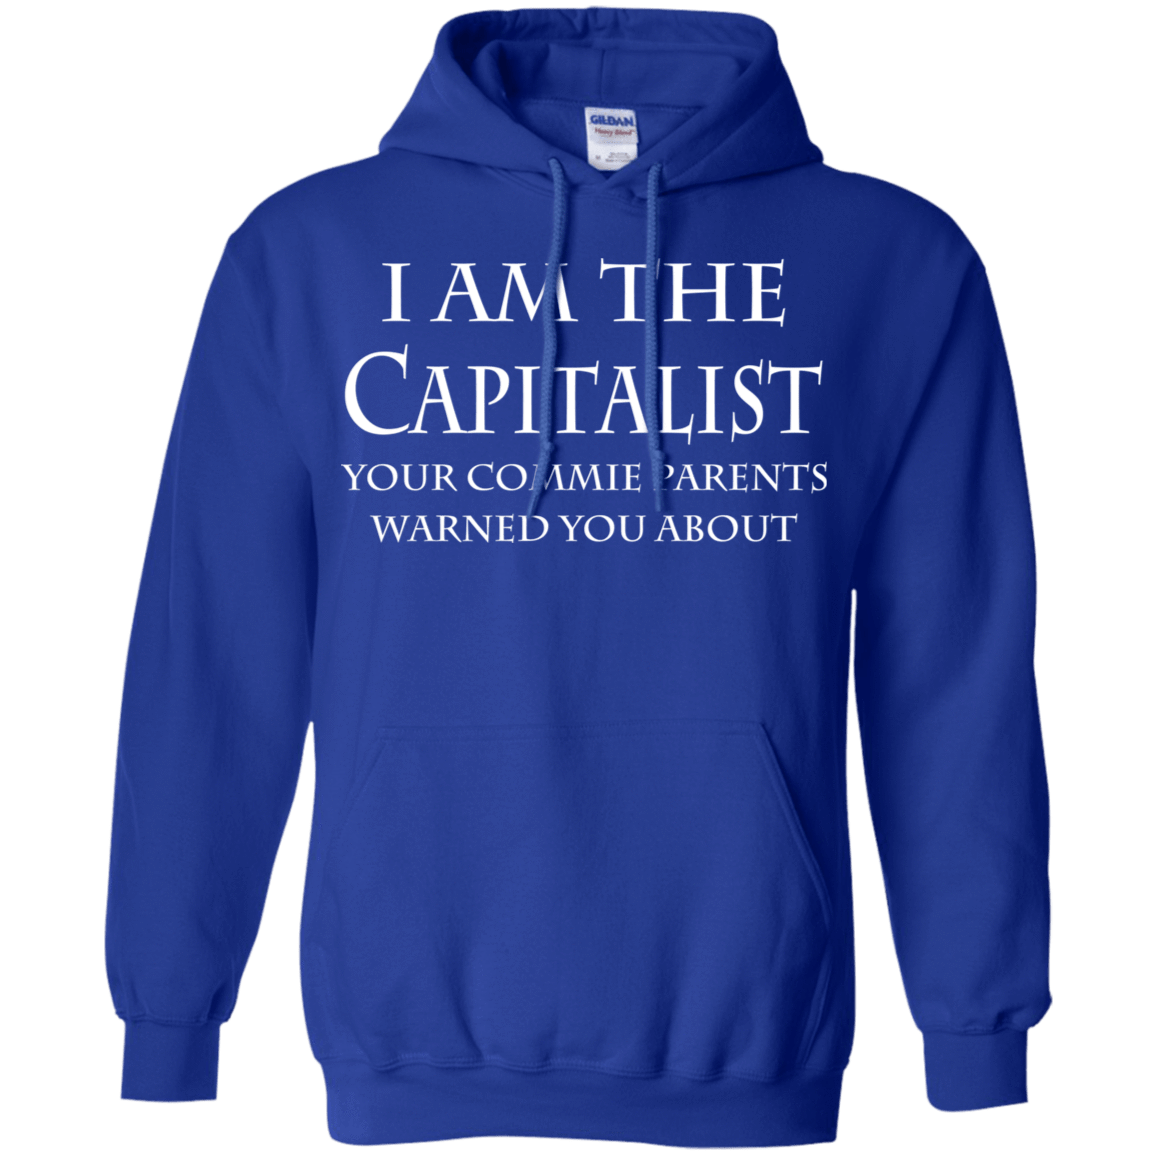 I Am The Capitalist Your Commie Parents Warned You About 541-4765-74170720-23175 - Tee Ript